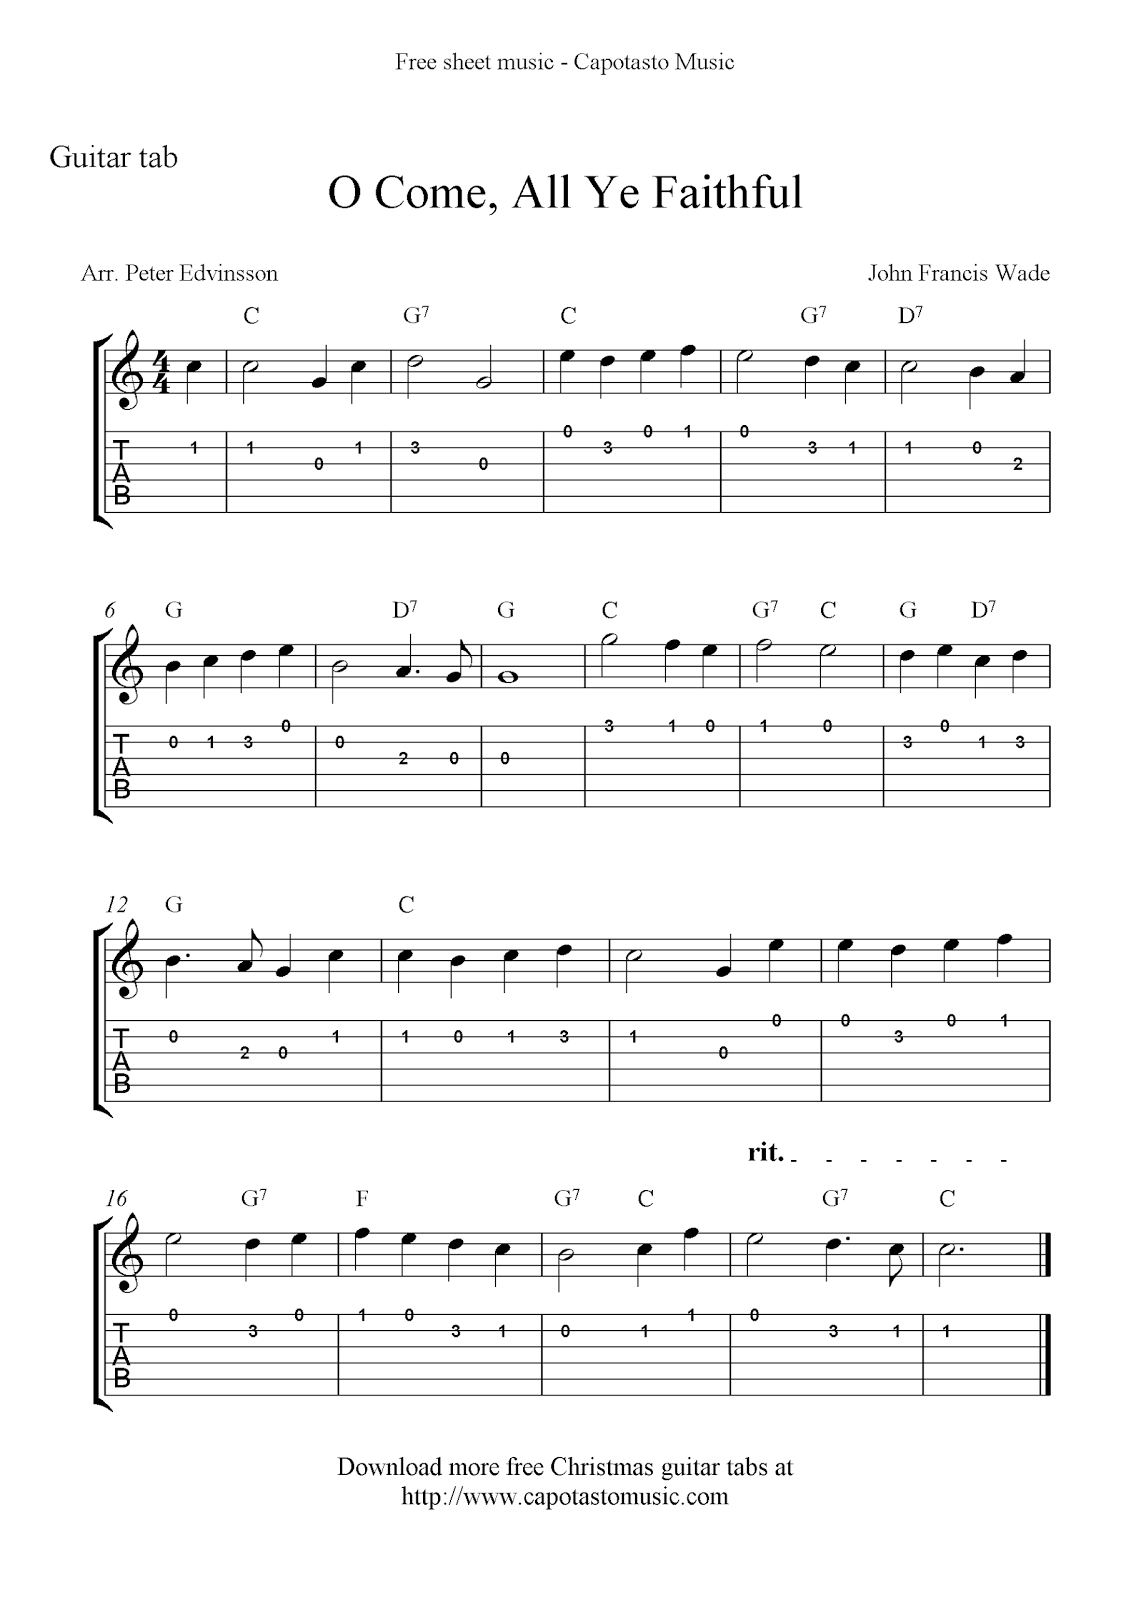 Free Printable Sheet Music O Come, All Ye Faithful, easy